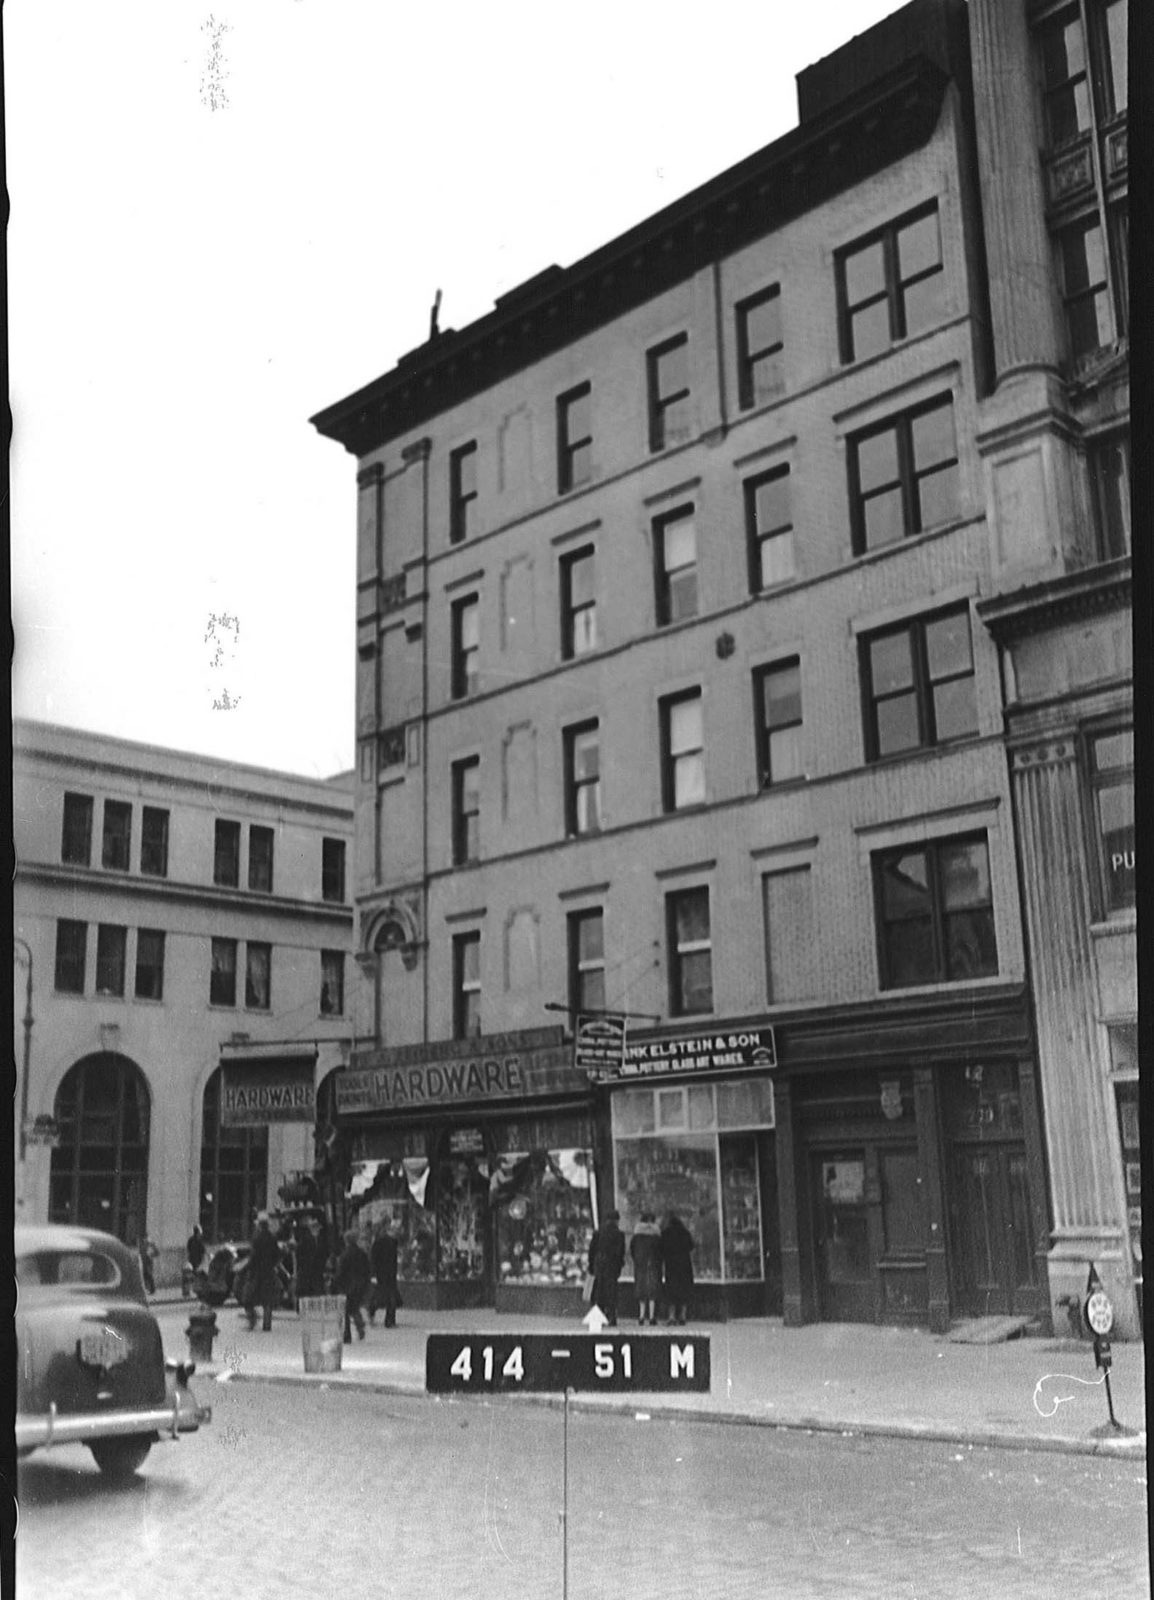 Exterior photo of 103 Orchard Street in 1940.